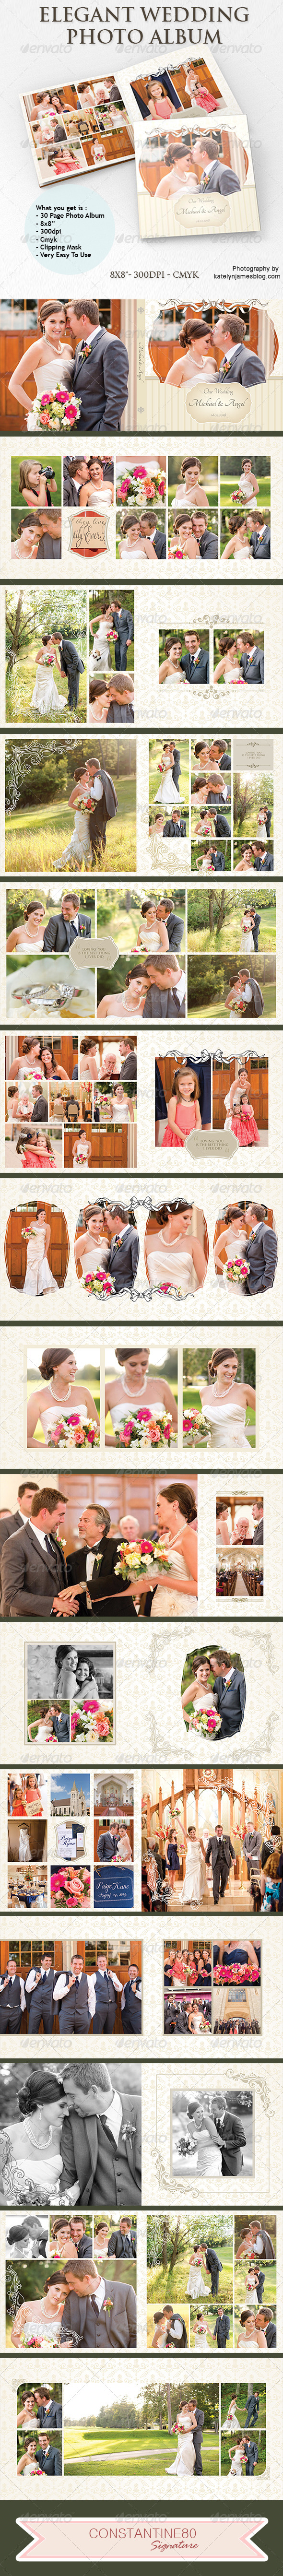 GraphicRiver Elegant Wedding Photo Album 5483702